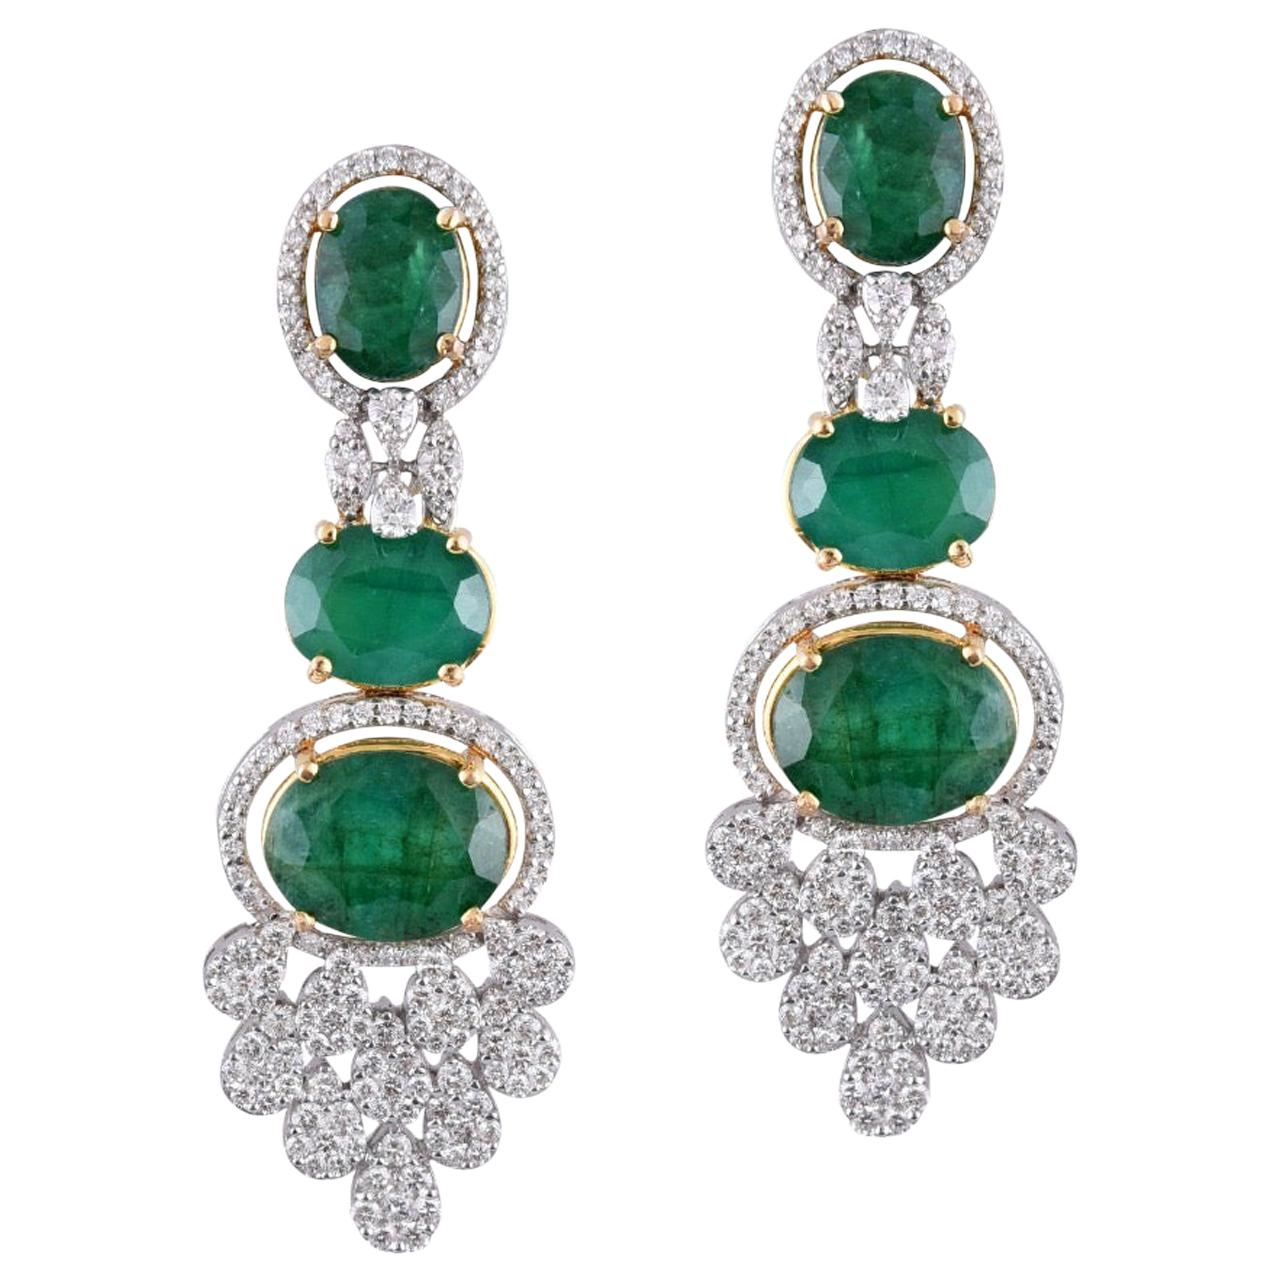 18 Karat Gold Emerald White Diamond Chandelier Earrings